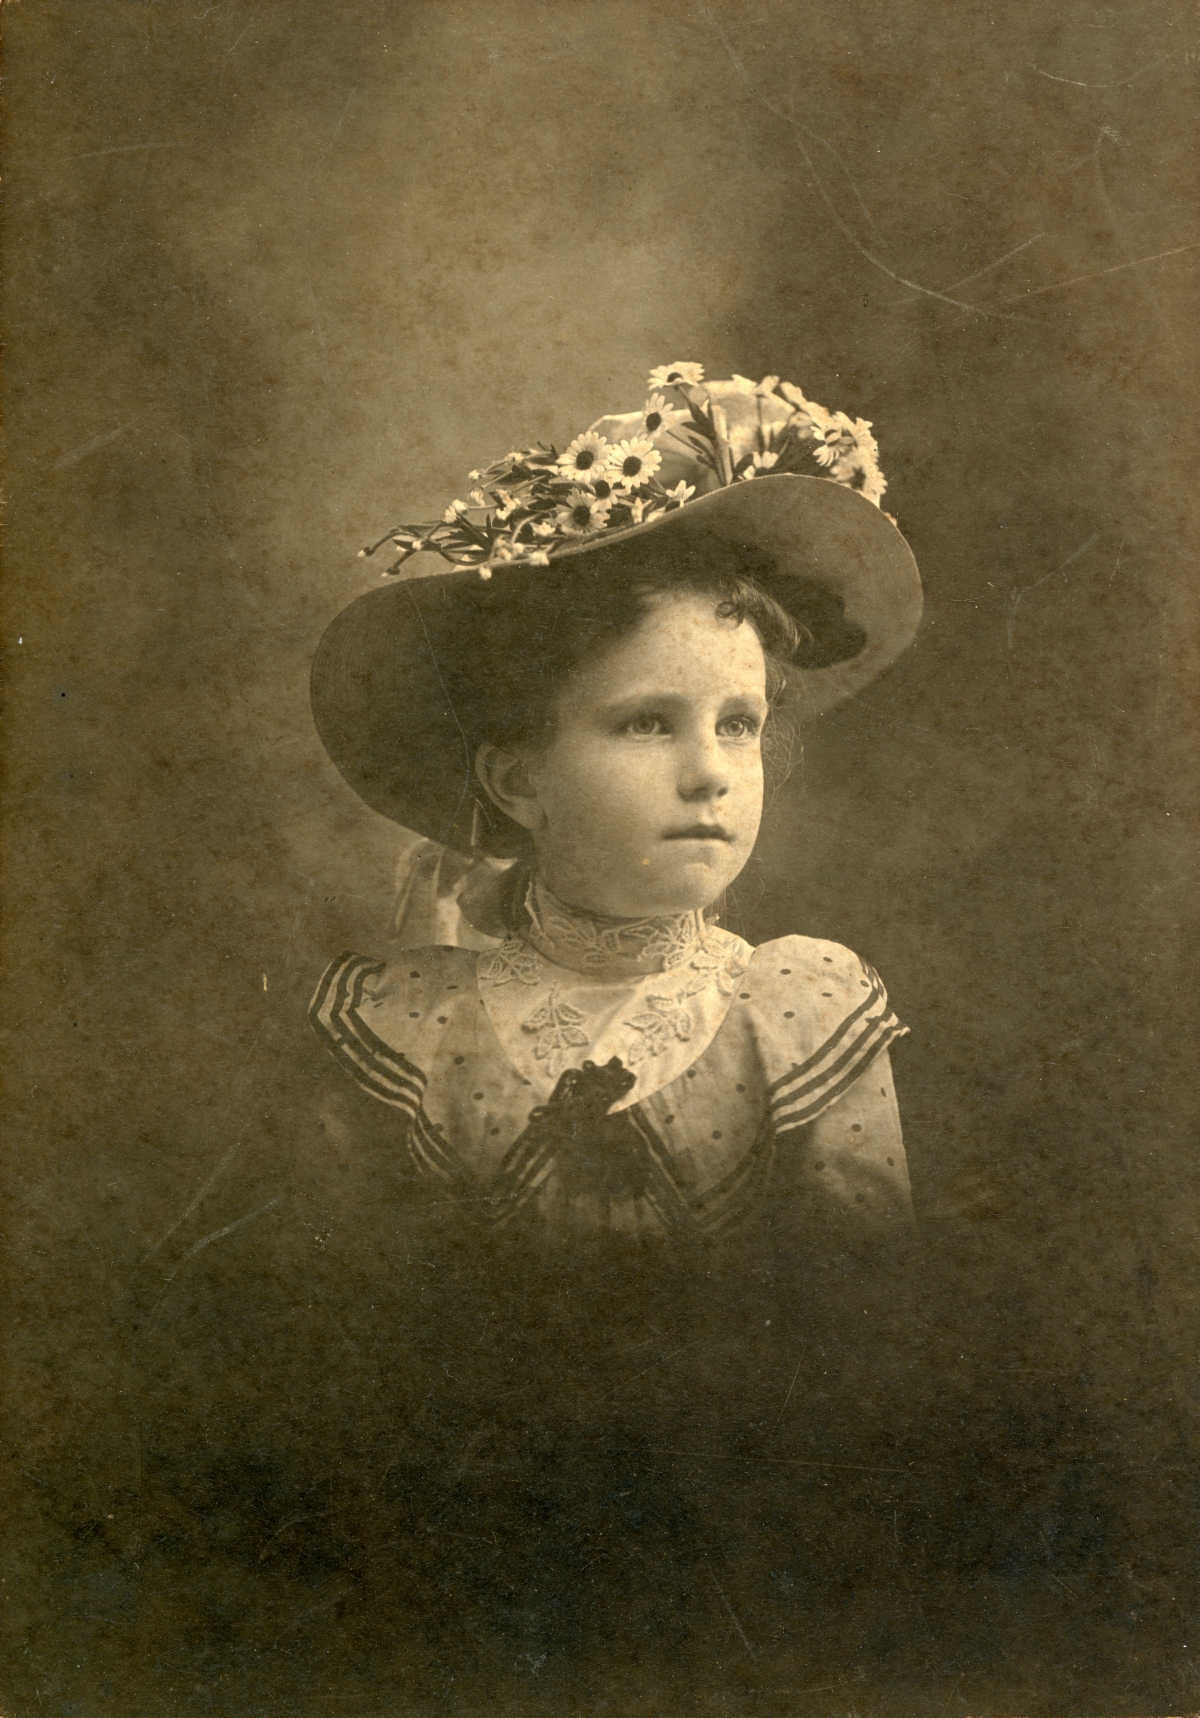 Studio portrait of Clara Sweeting from Bagdad, Florida.